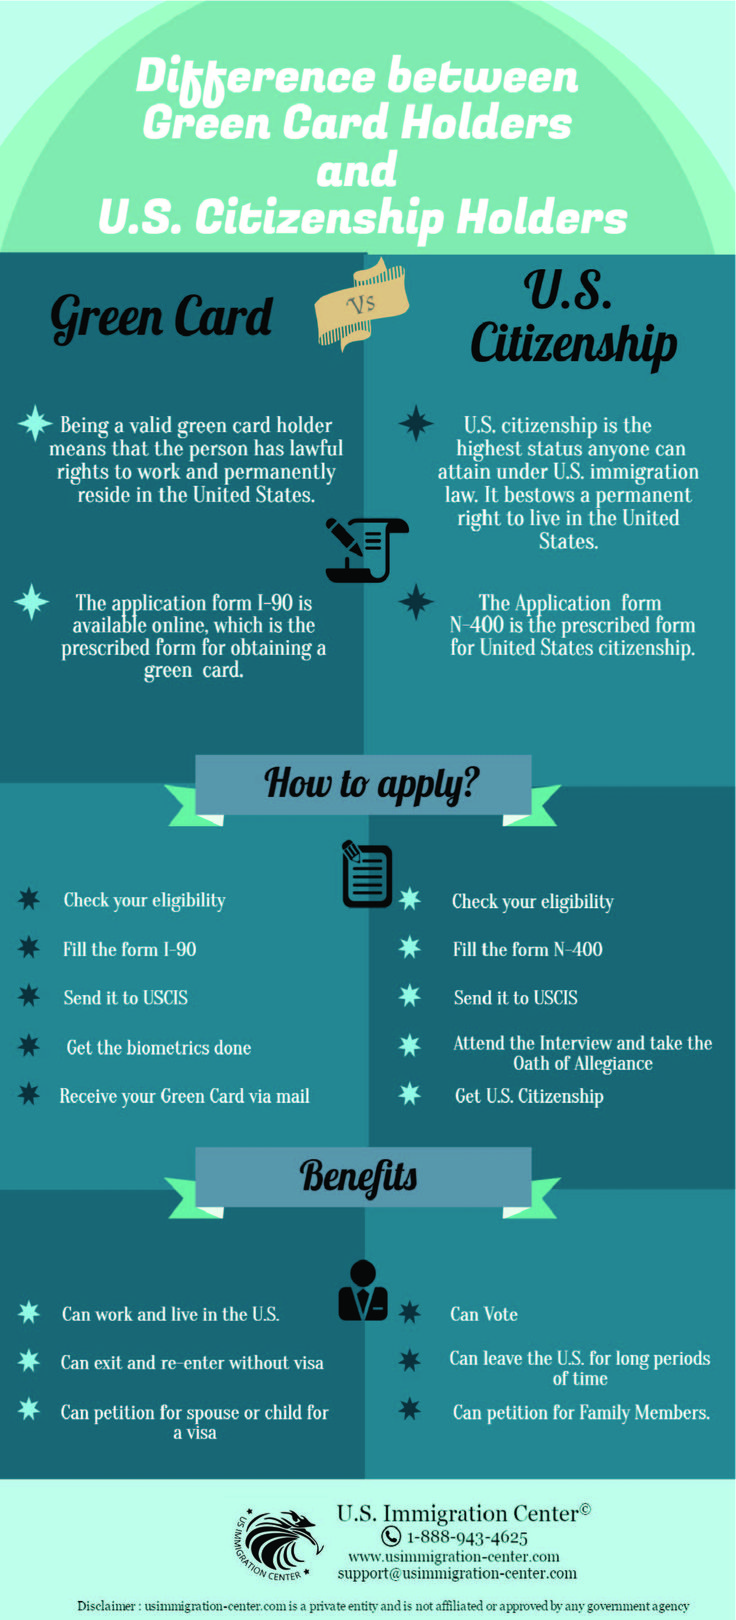 Did you know that there is a lot of difference between green card holders and U.S. citizenship holders? Visit here and learn more